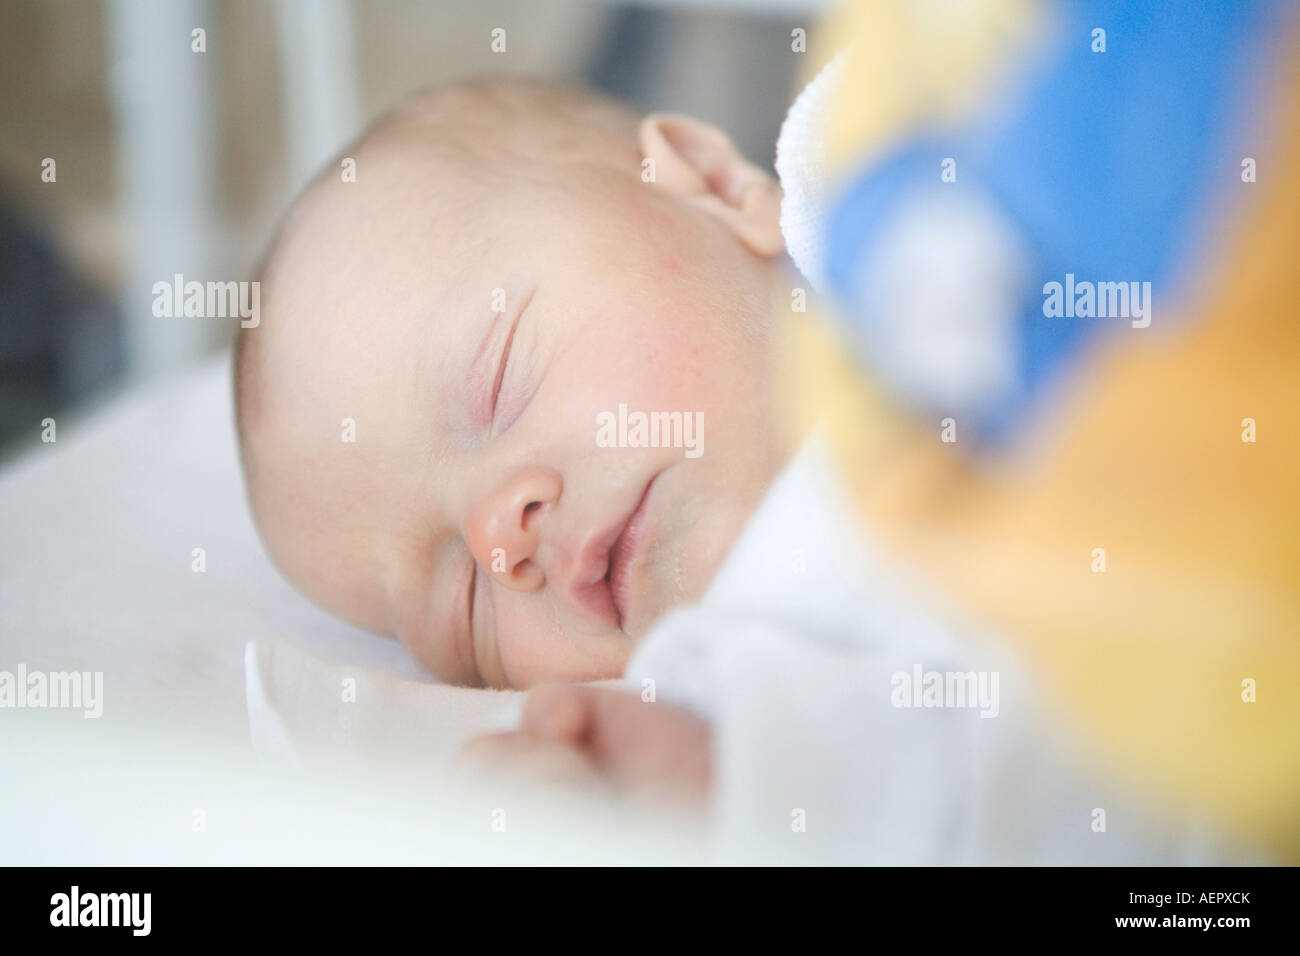 infant one day old - Stock Image